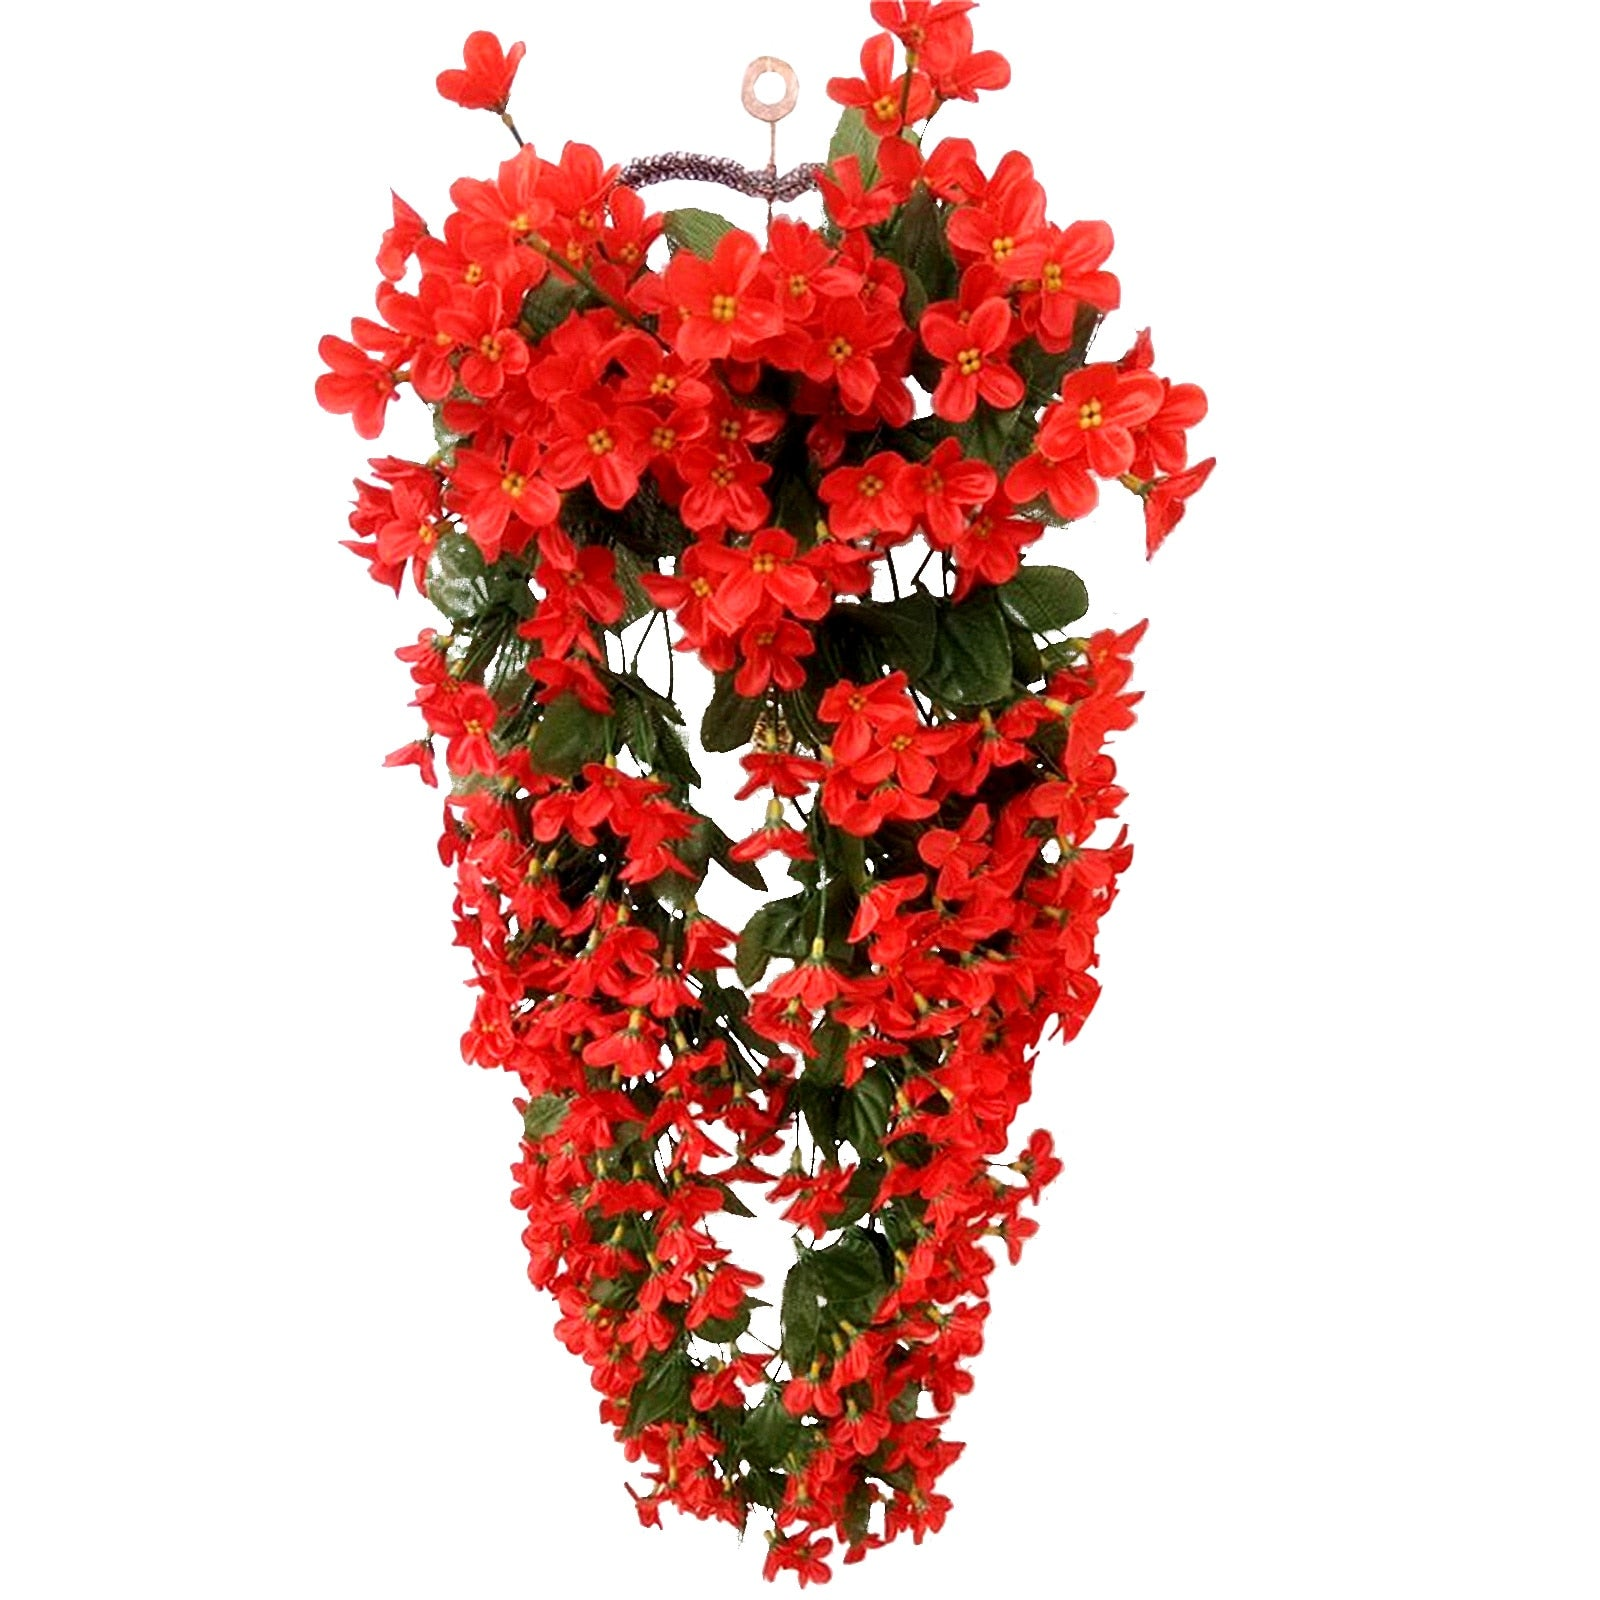 Artificial Flower Wall Hanging Basket Flower for Home Decor - Blindly Shop